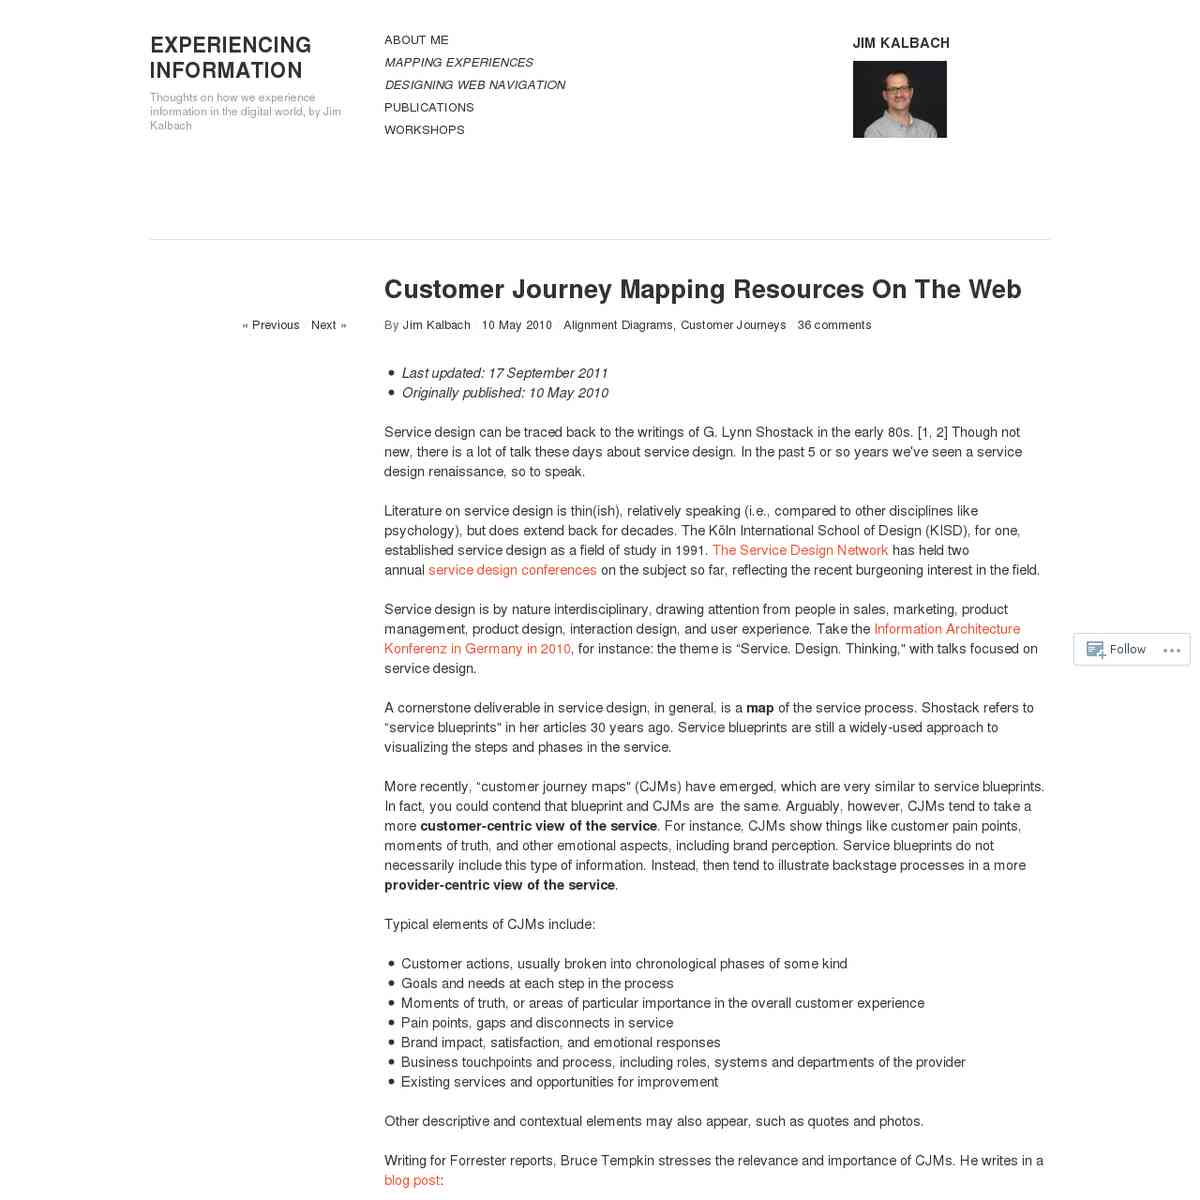 Customer Journey Mapping Resources On The Web